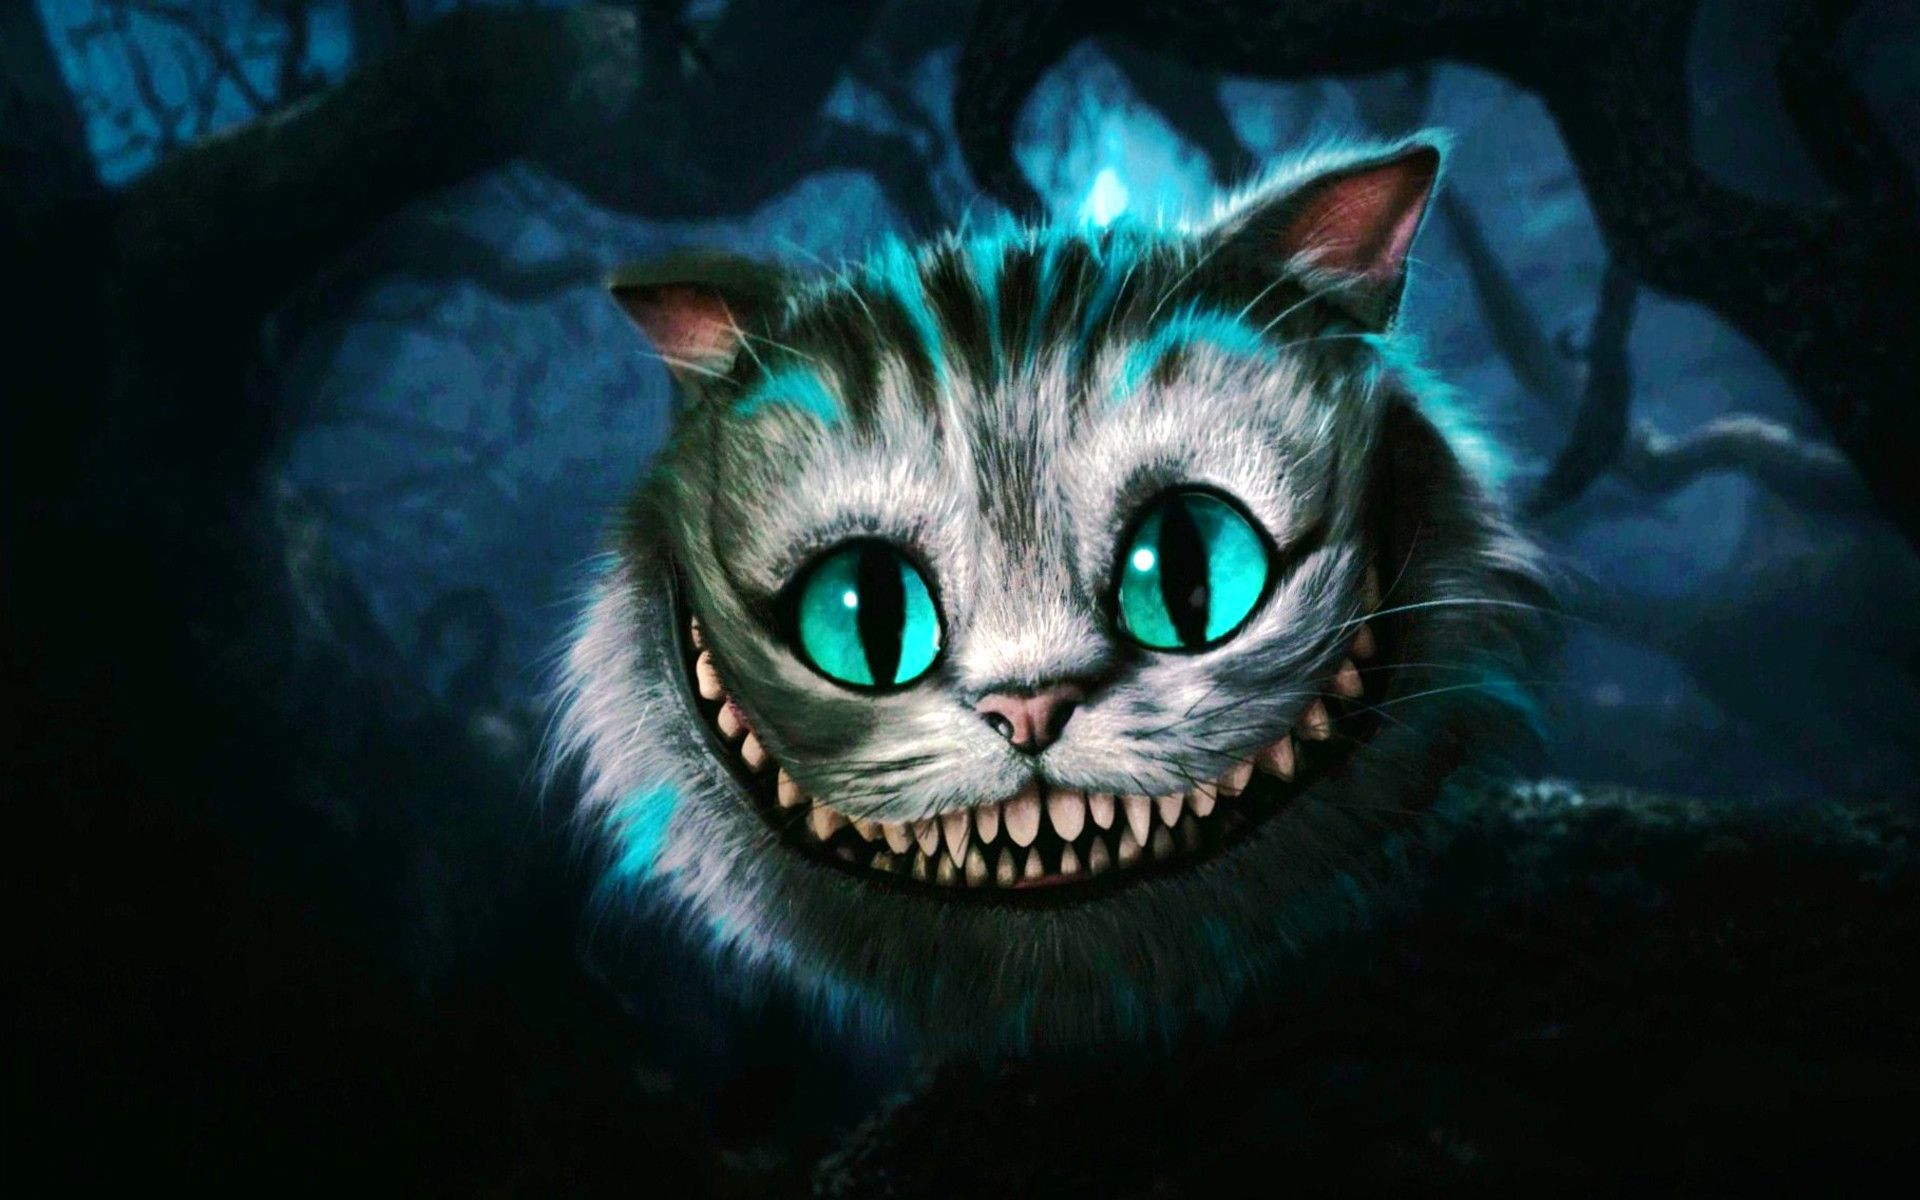 Wallpapers Cat Posted By Ethan Peltier